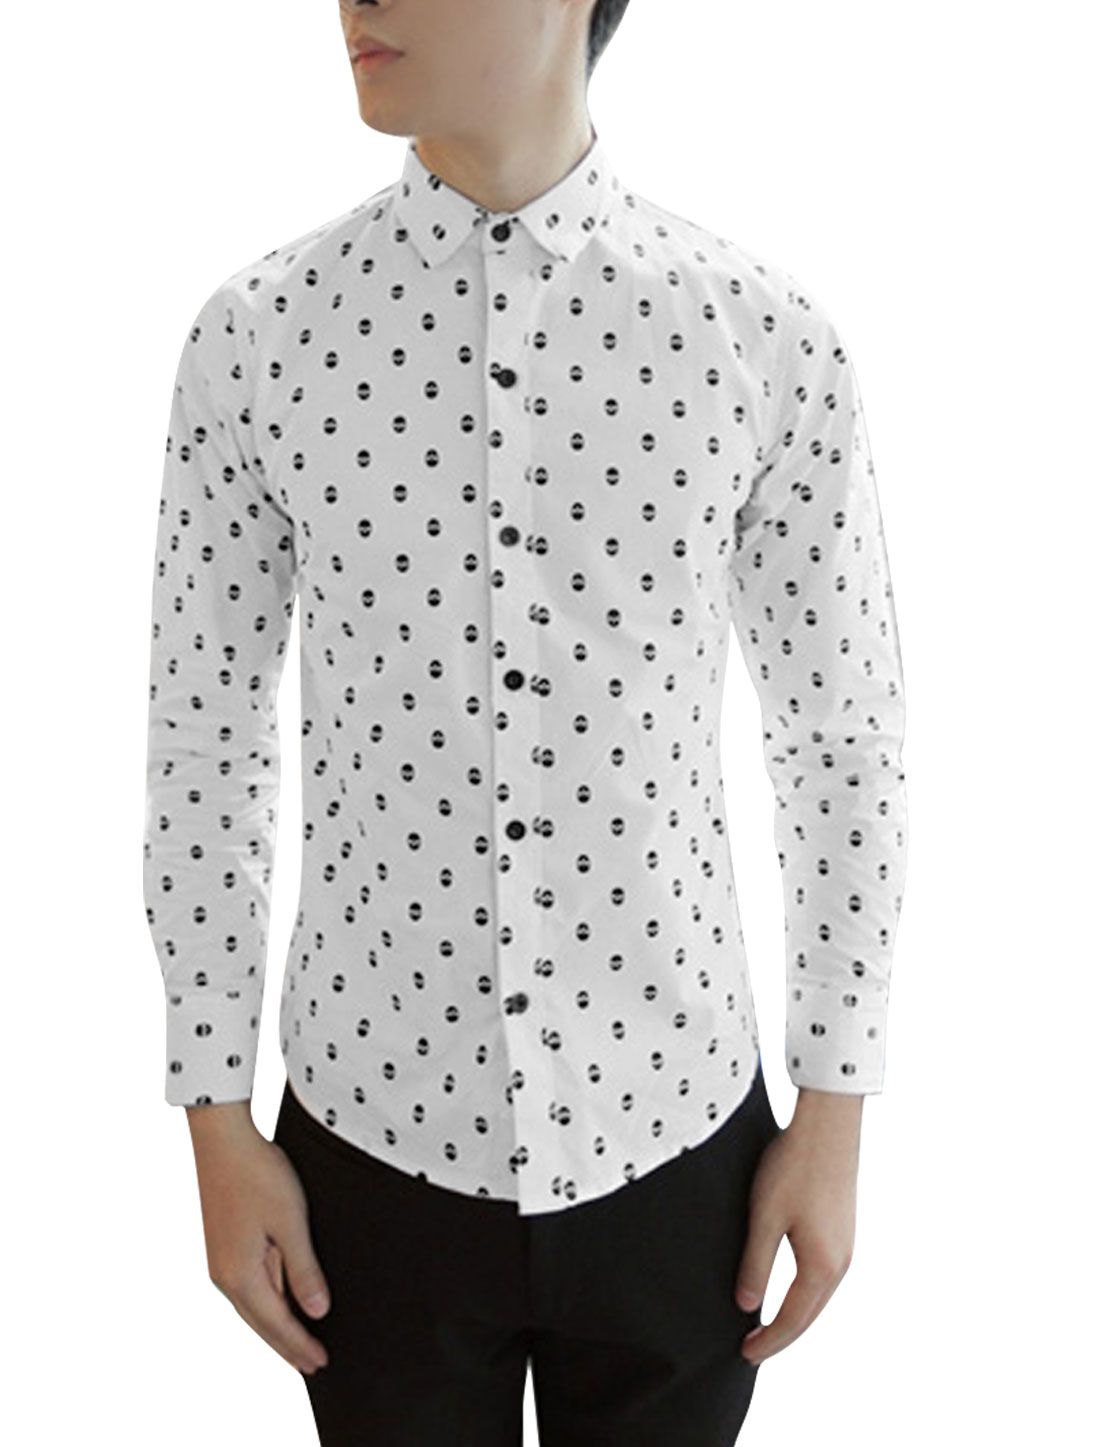 Men's Stylish Point Collar Skulls Pattern Button Front White M Shirt